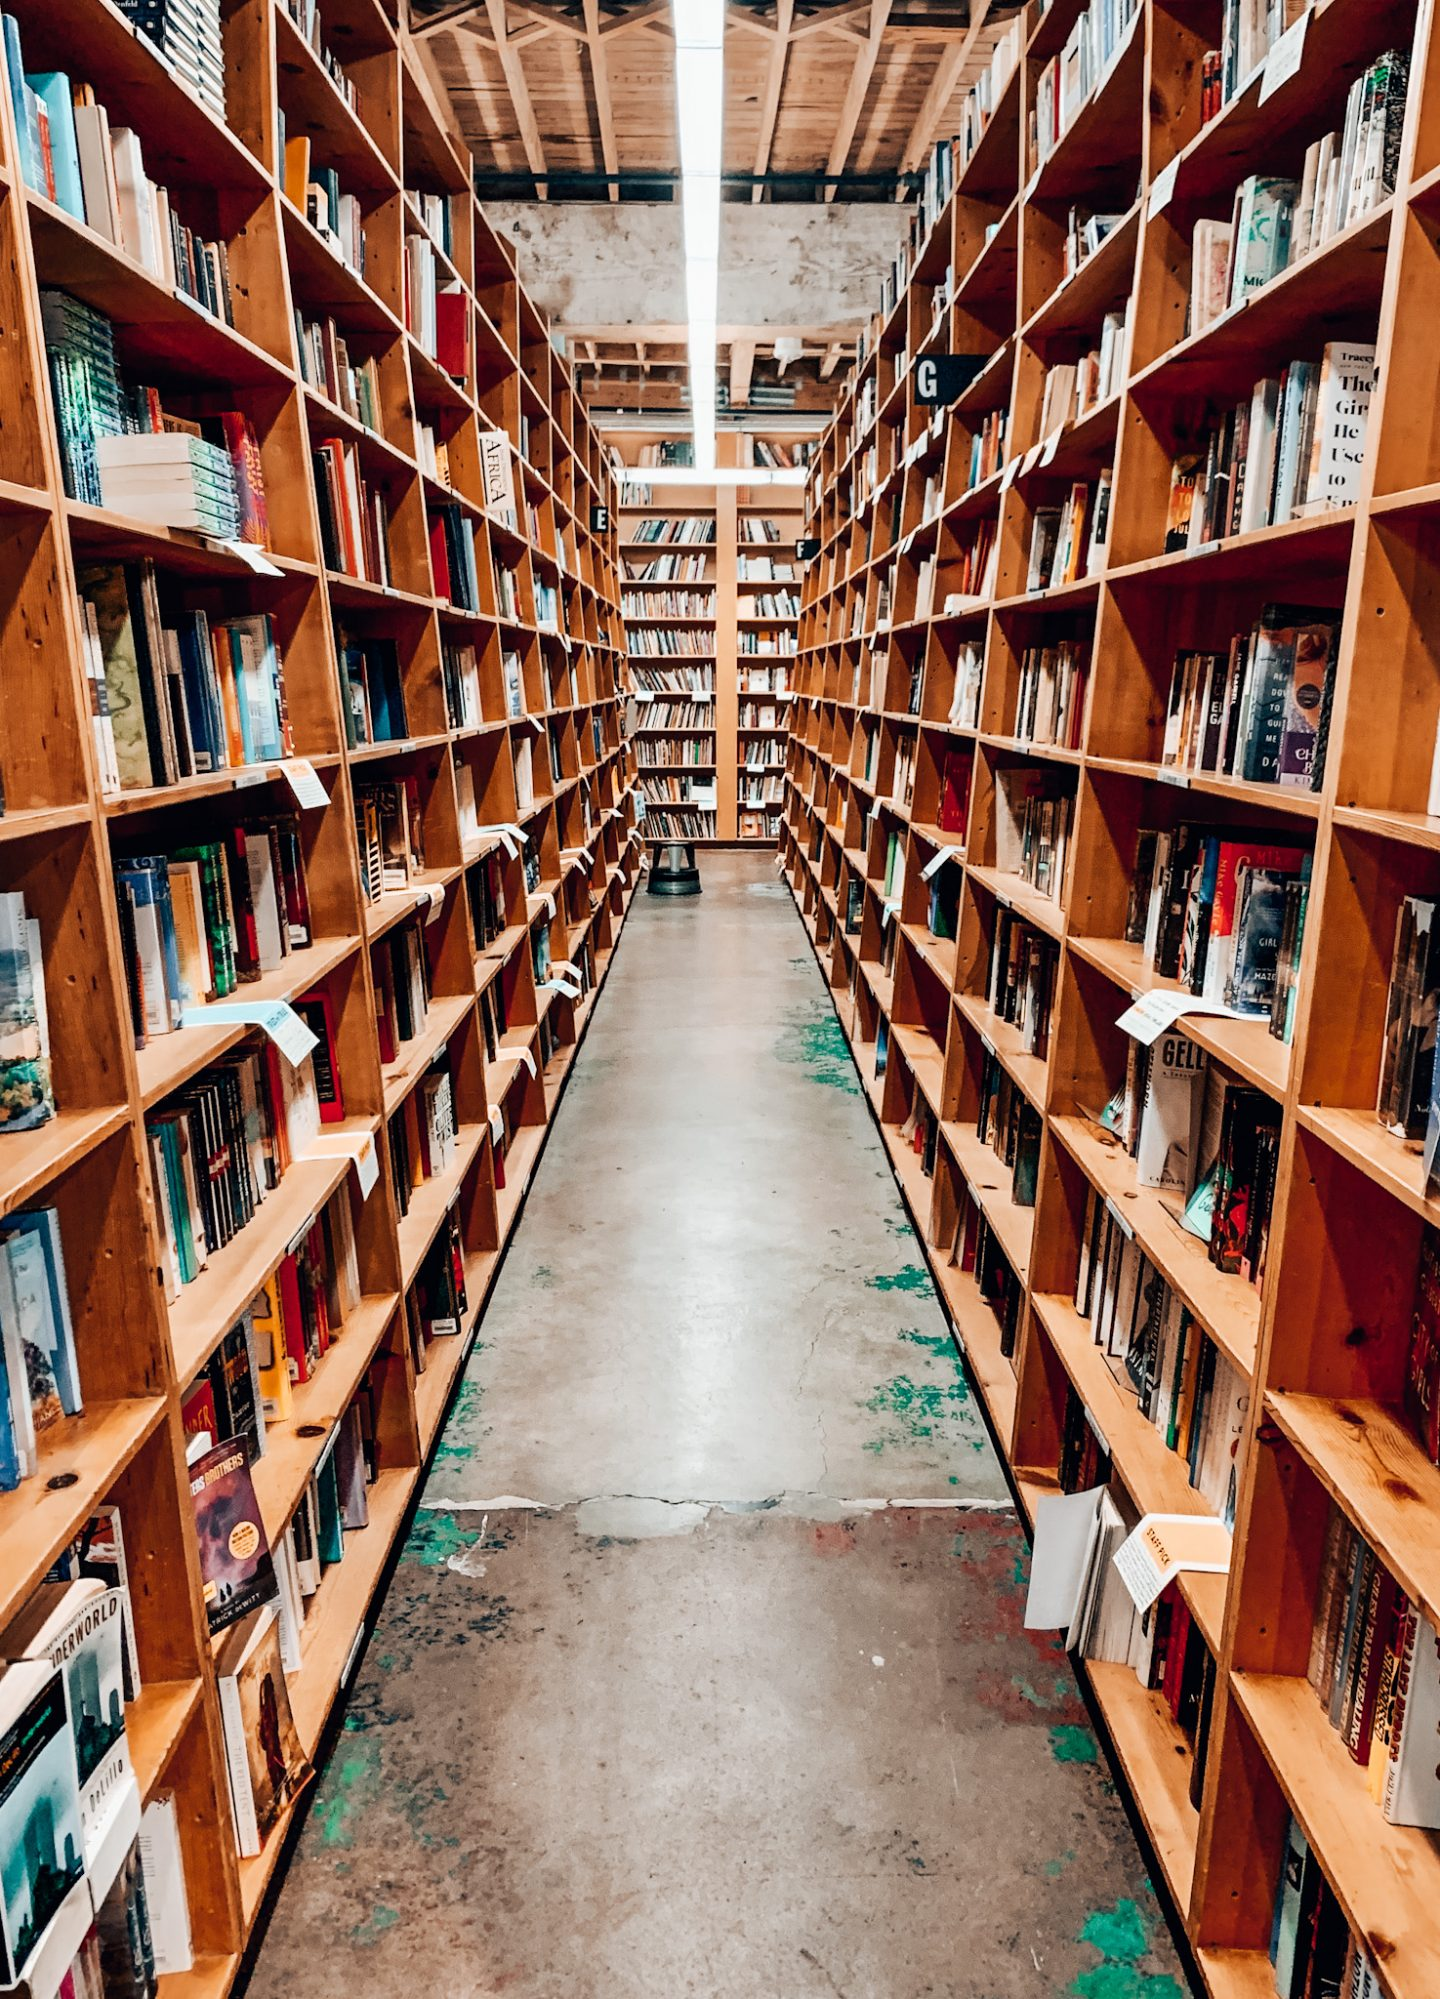 The famous book stacks in Powell's